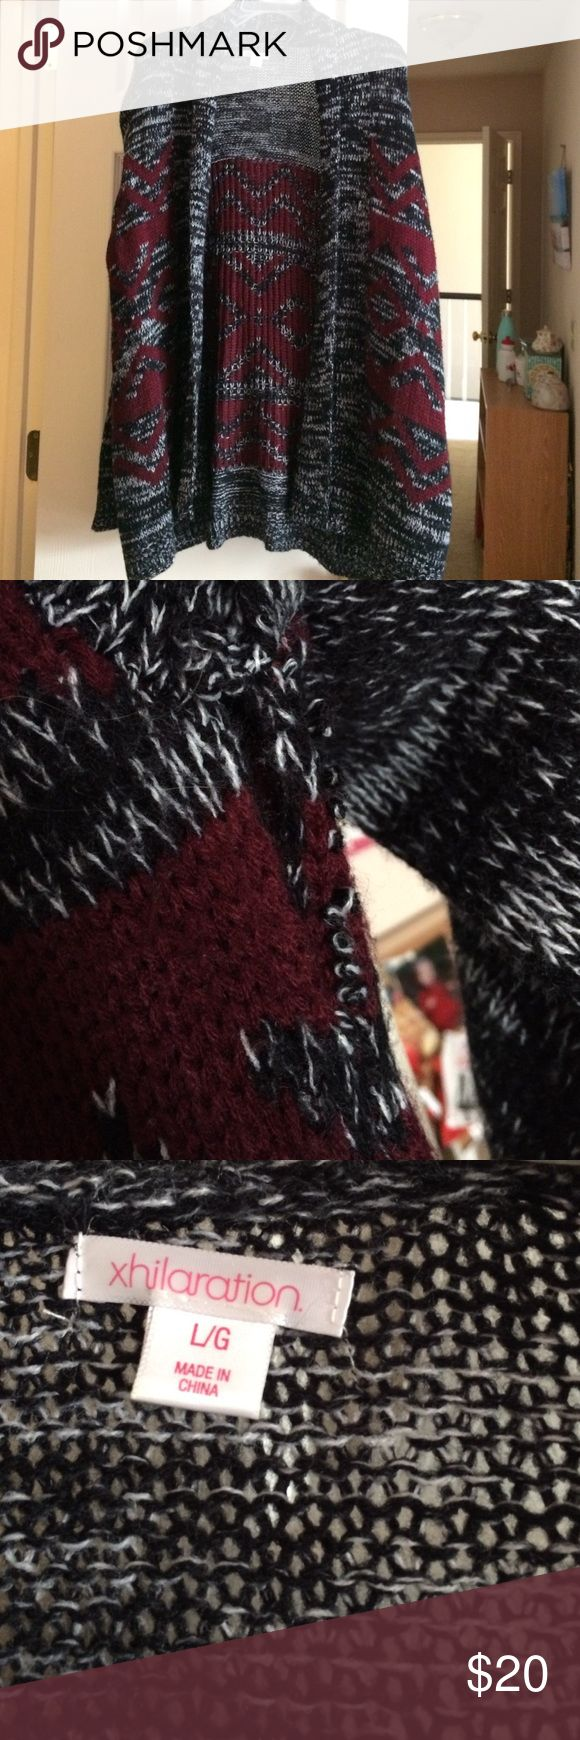 Cardigan Cardigan with maroon design. Hole in one arm pit area. Could easily be sown back. Other than that, great condition. Xhilaration Sweaters Cardigans